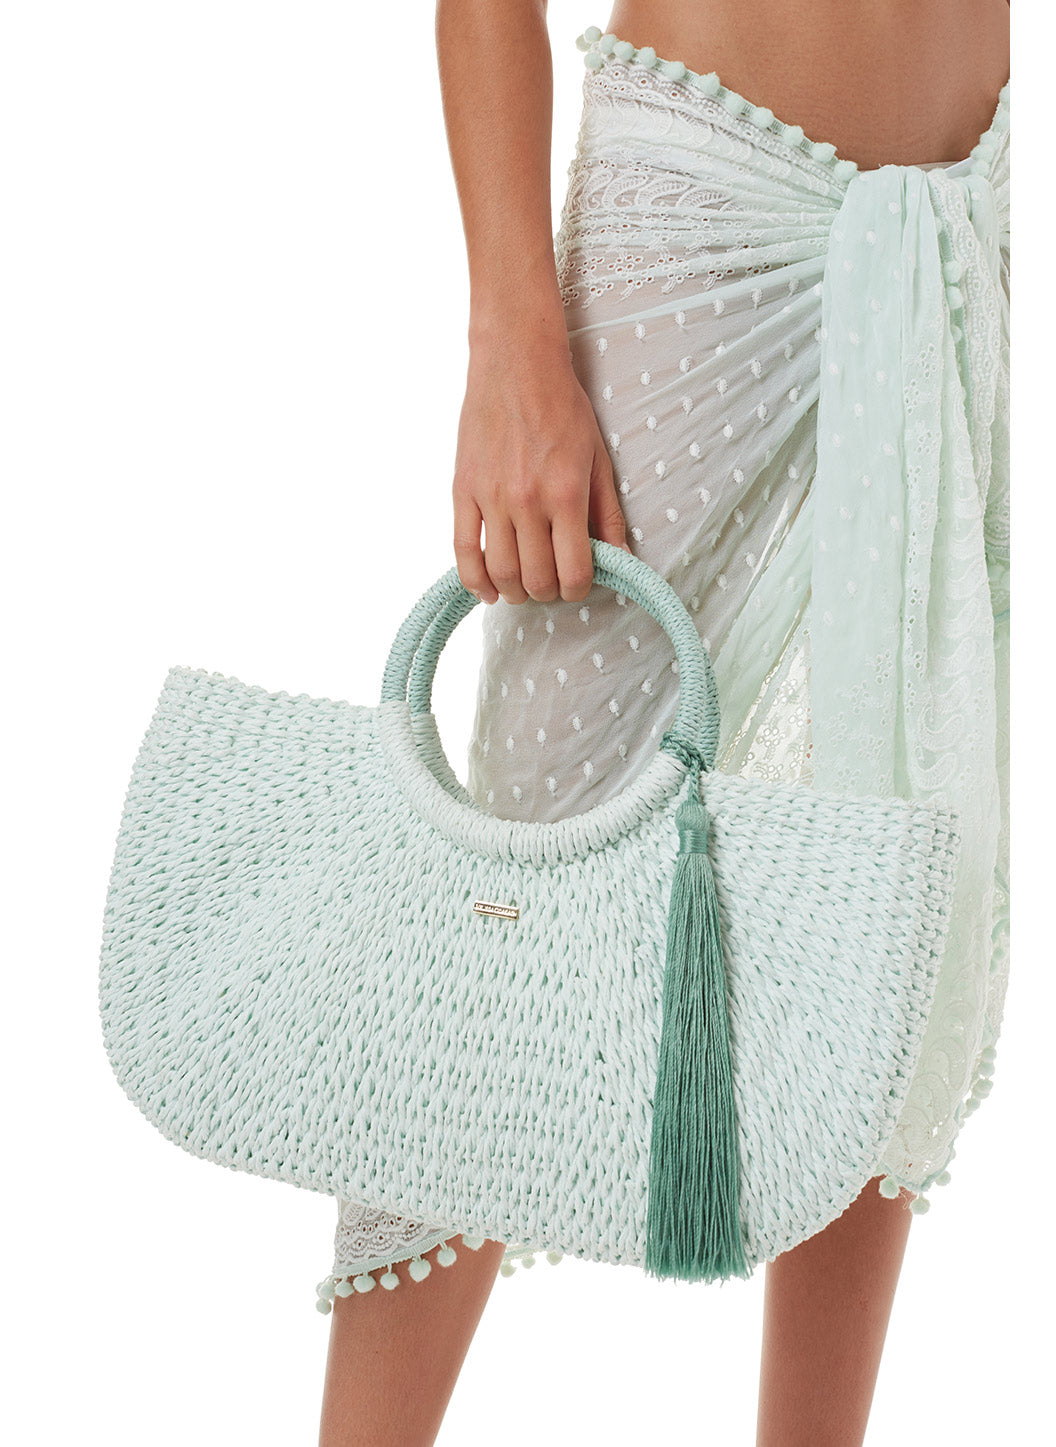 Sorrento Woven Basket Tassel Bag Mint